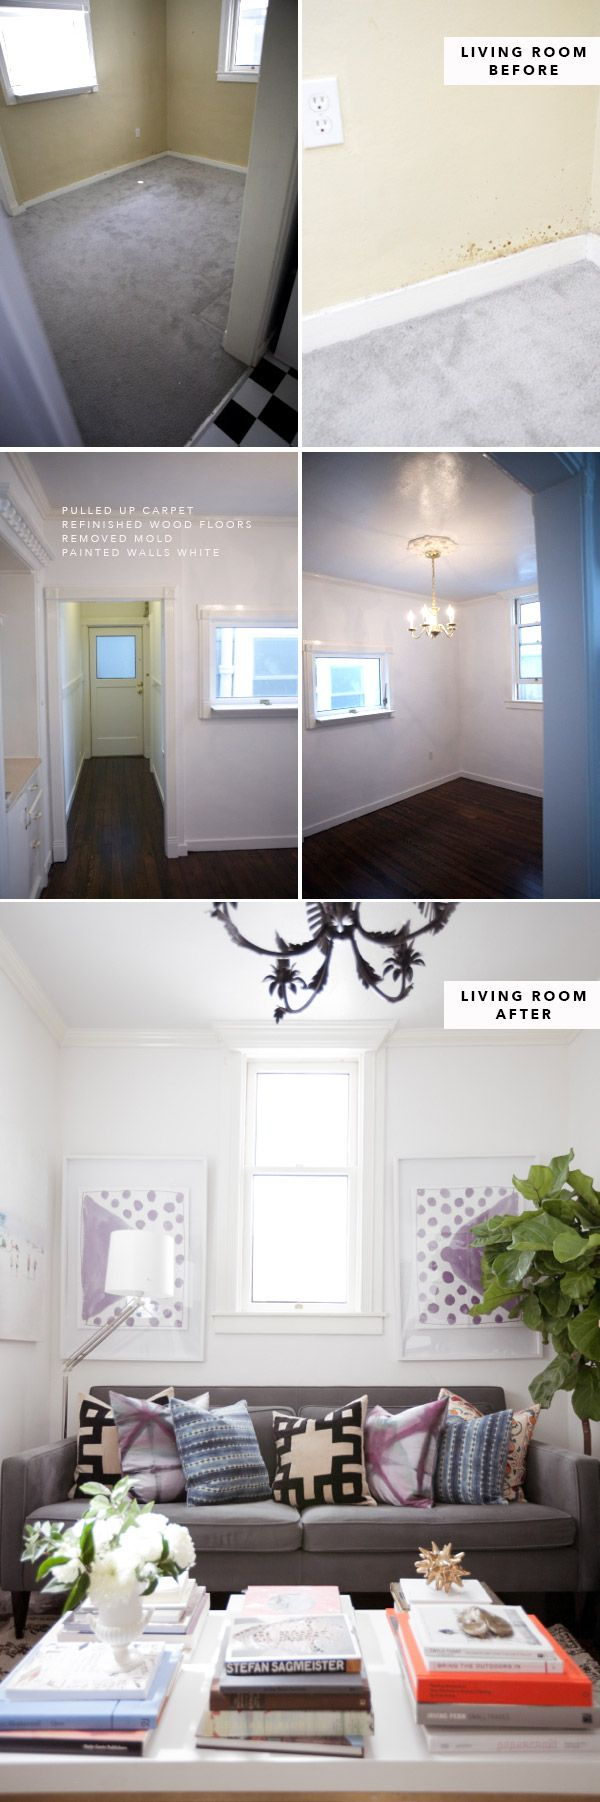 Before and After 500 Sq Ft (47kvm) Apartment